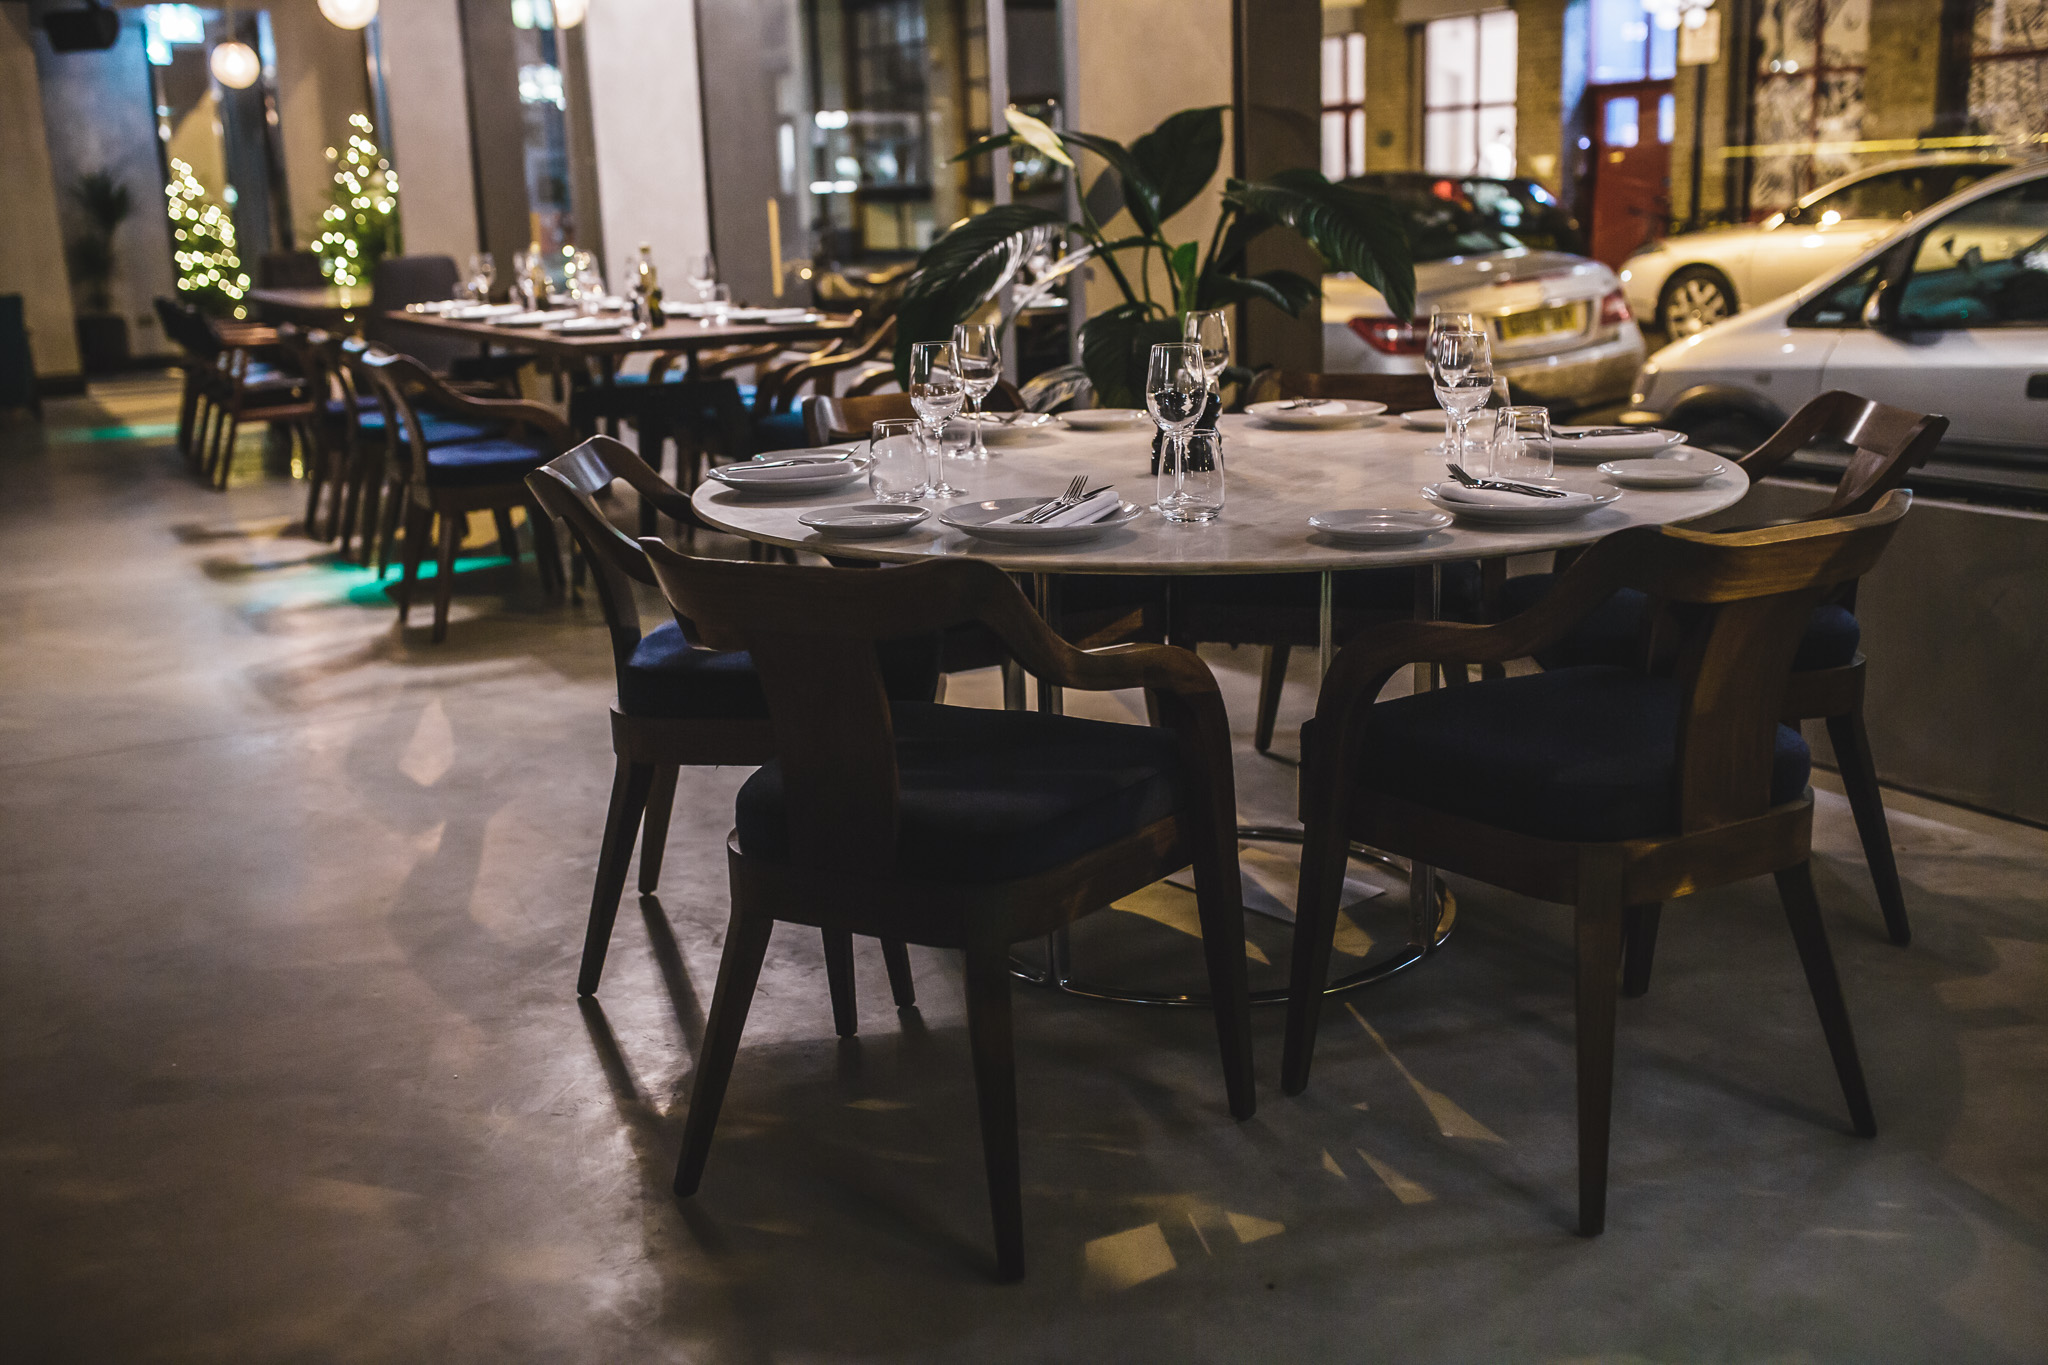 70 Leonard Street  Championing Iberian gastronomy with a focus on Portuguese and Spanish traditional cuisine. Formerly known as Eyre Brothers.